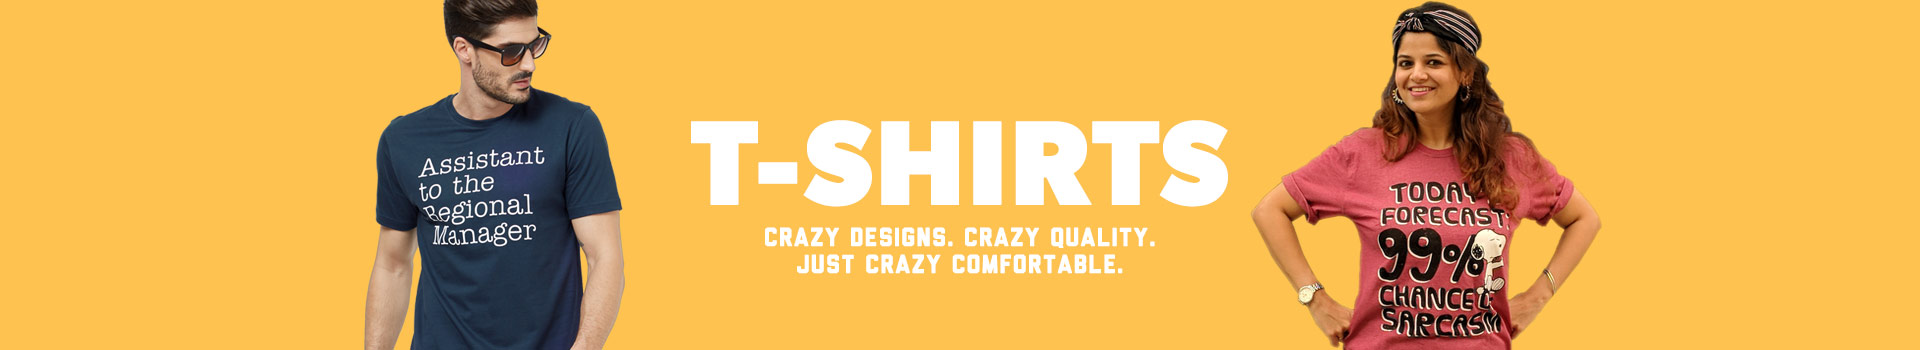 Category Banner - T-shirts